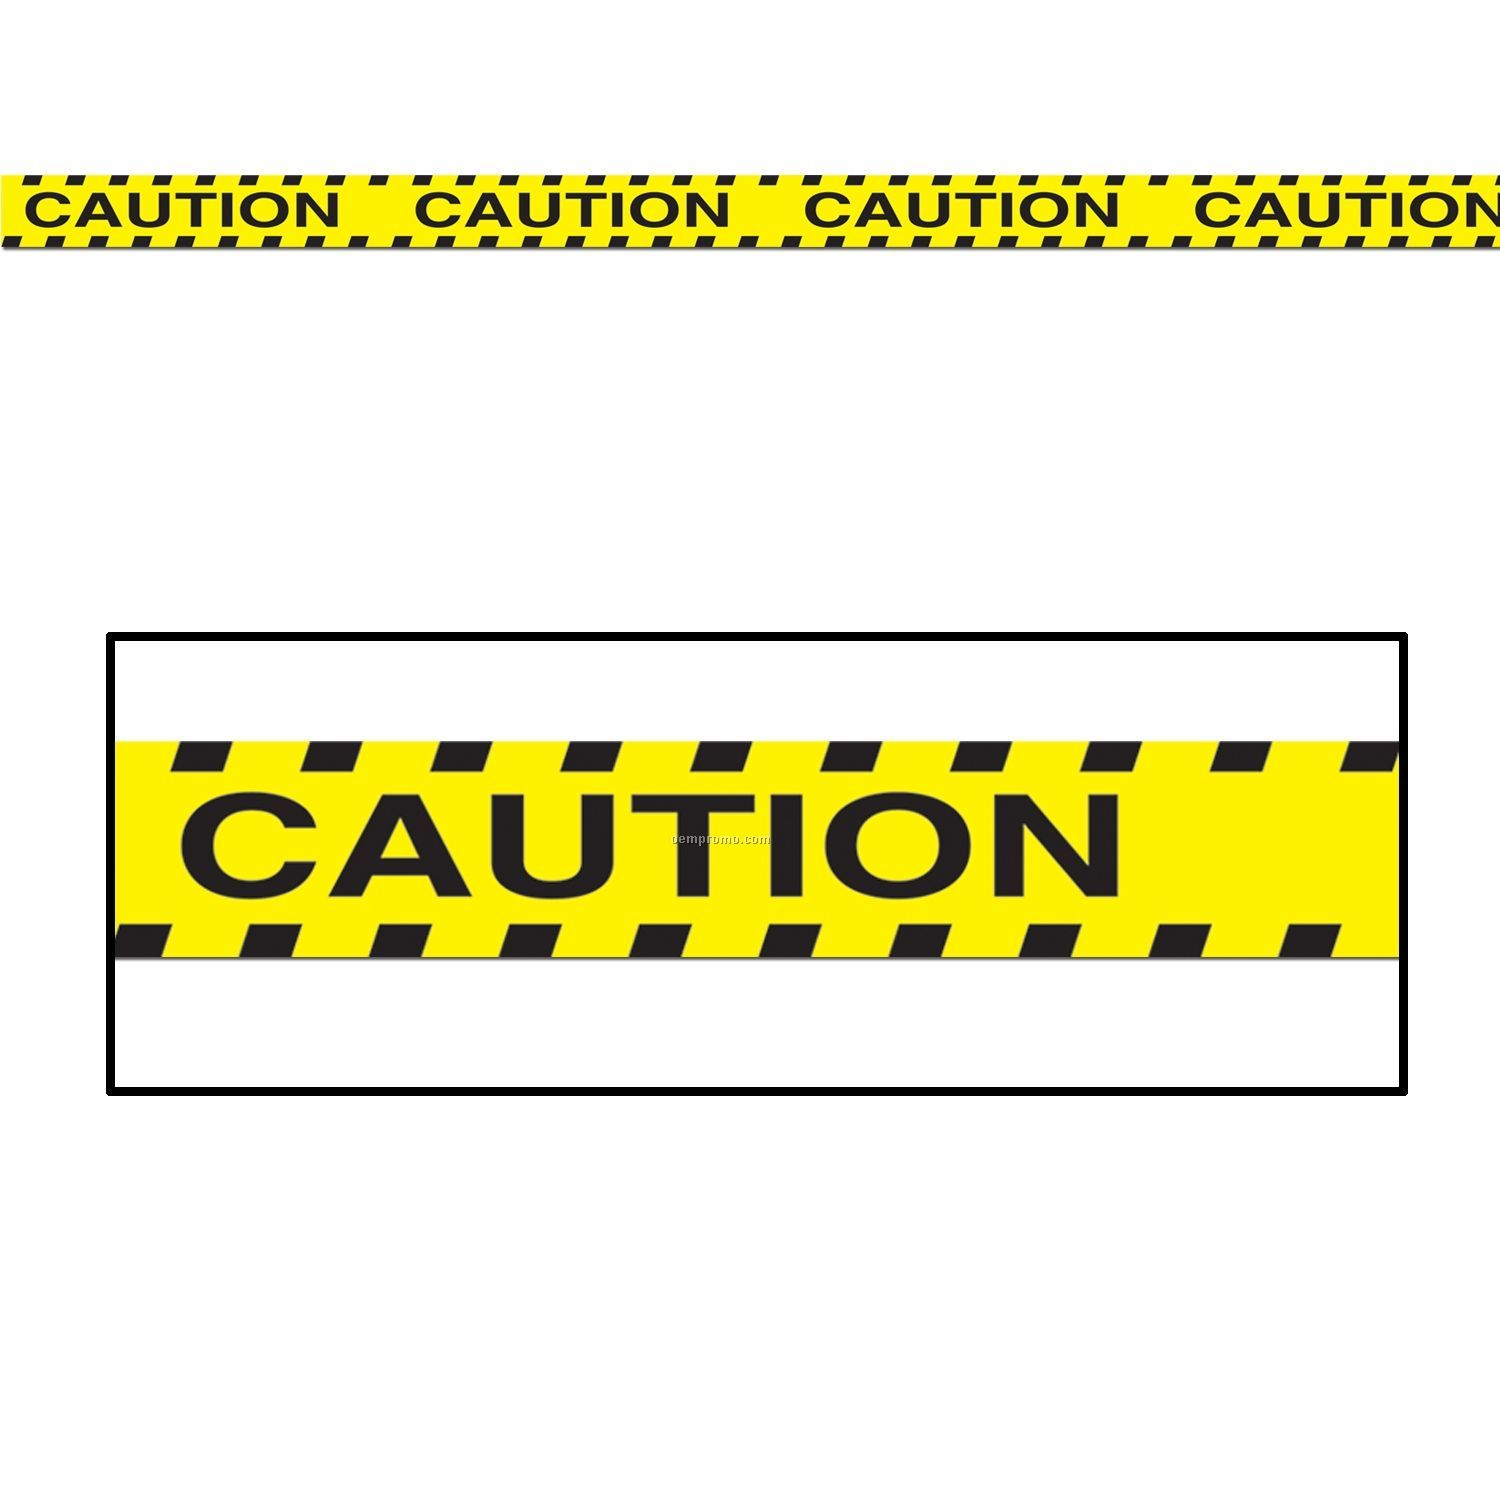 Caution Party TapeChina Wholesale Caution Party Tape